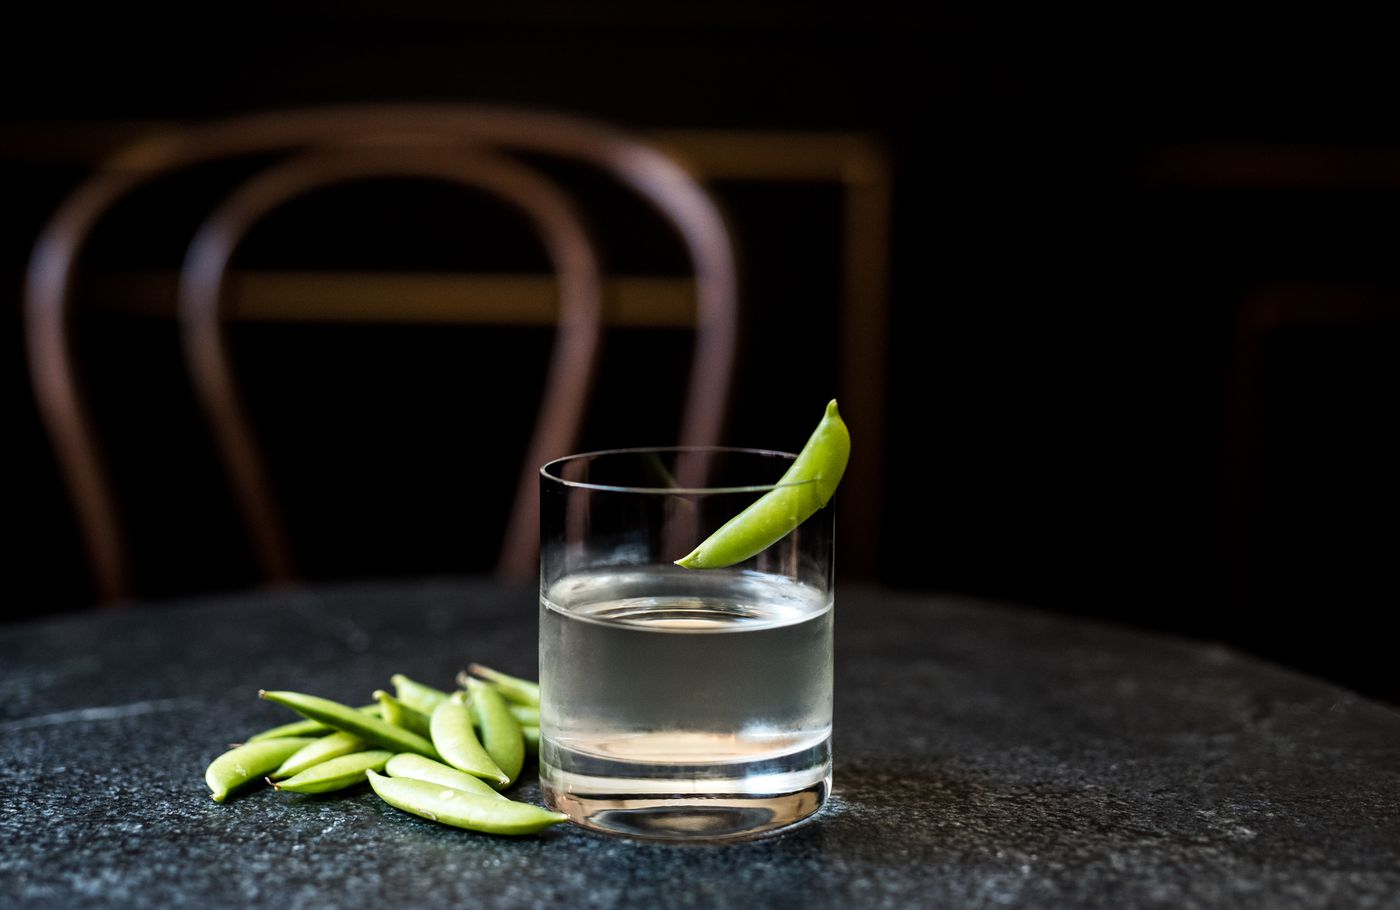 A clean and delicate tequila cocktail, Royal Boucherie's Baby, Peas Don't Go, features a shrub derived from a snap pea and green-peppercorn-infused champagne vinegar.